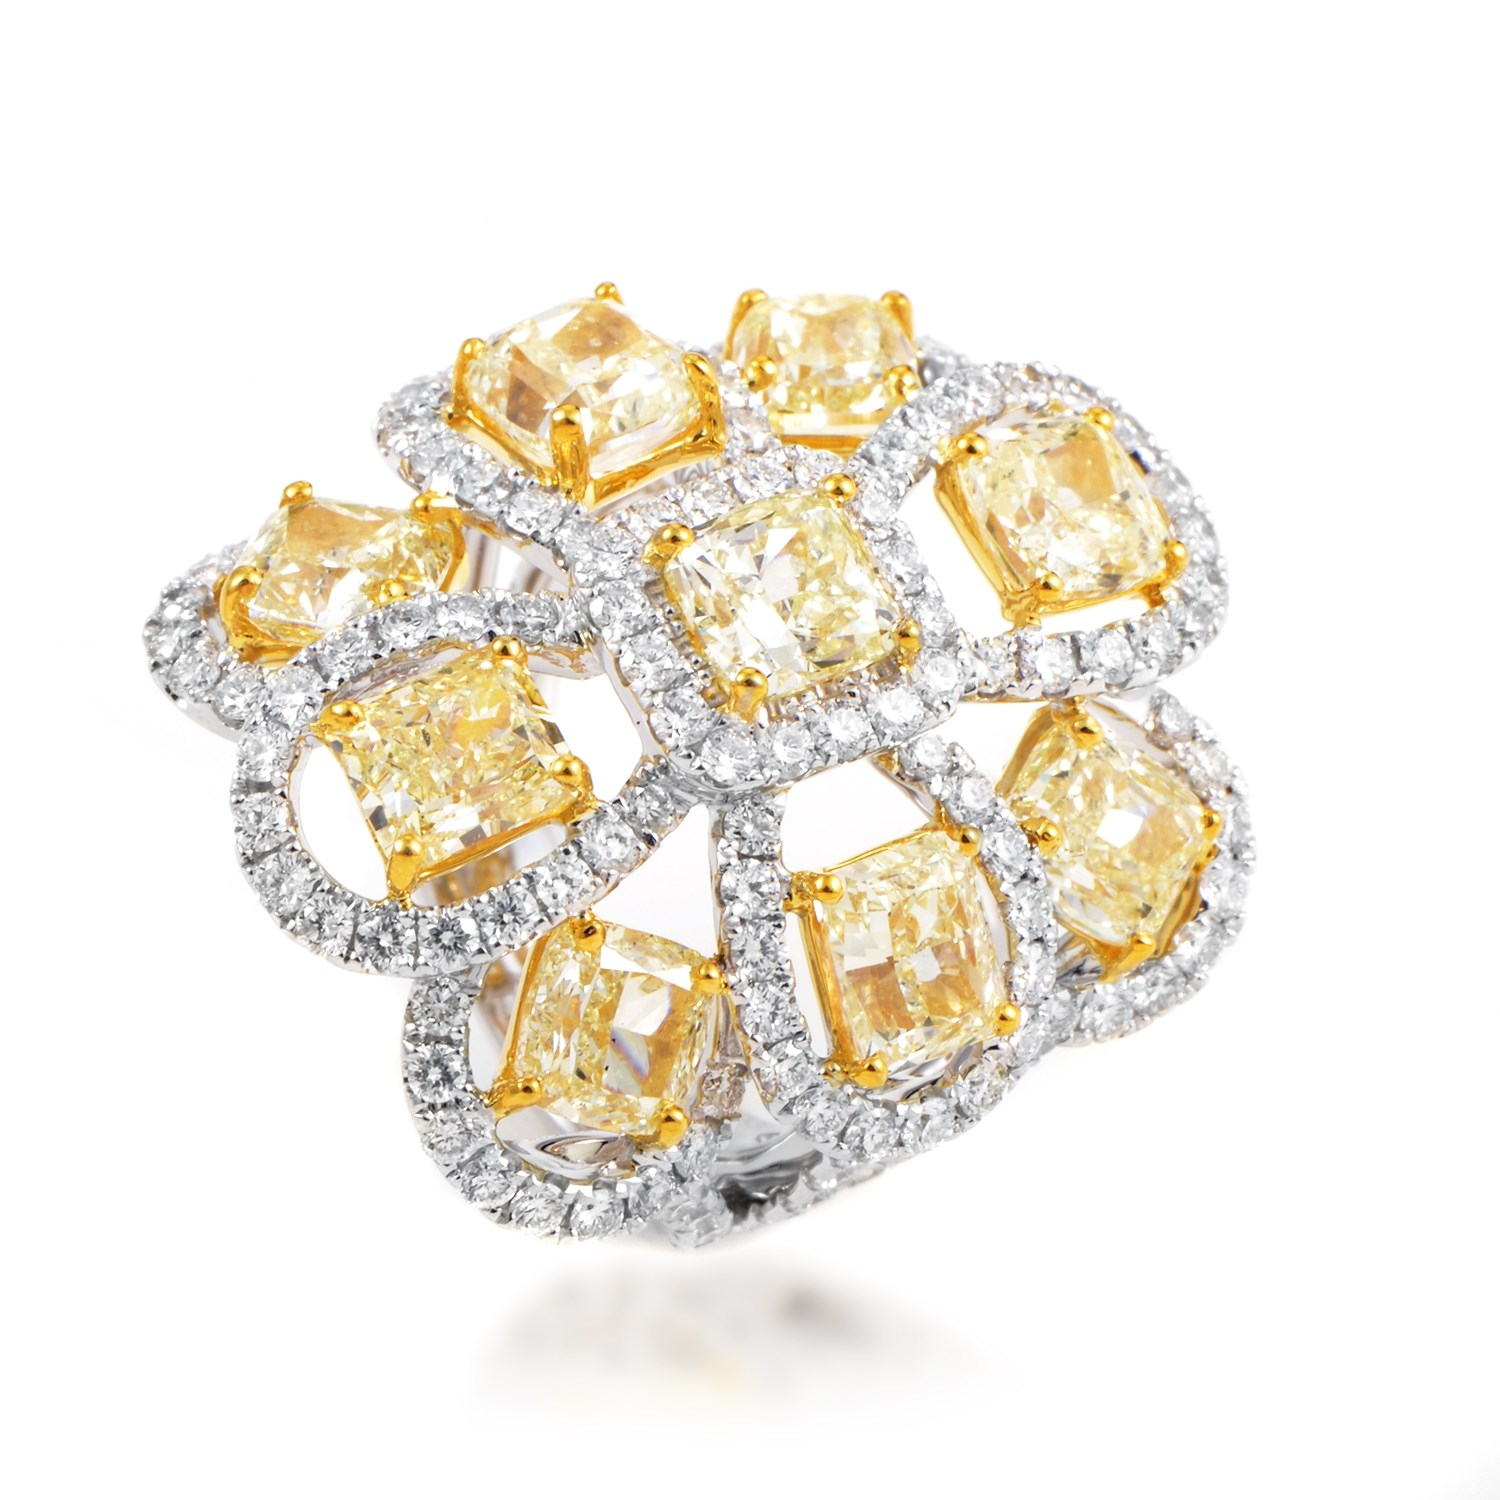 Women's 18K Multi-Tone Gold Diamond Cocktail Ring